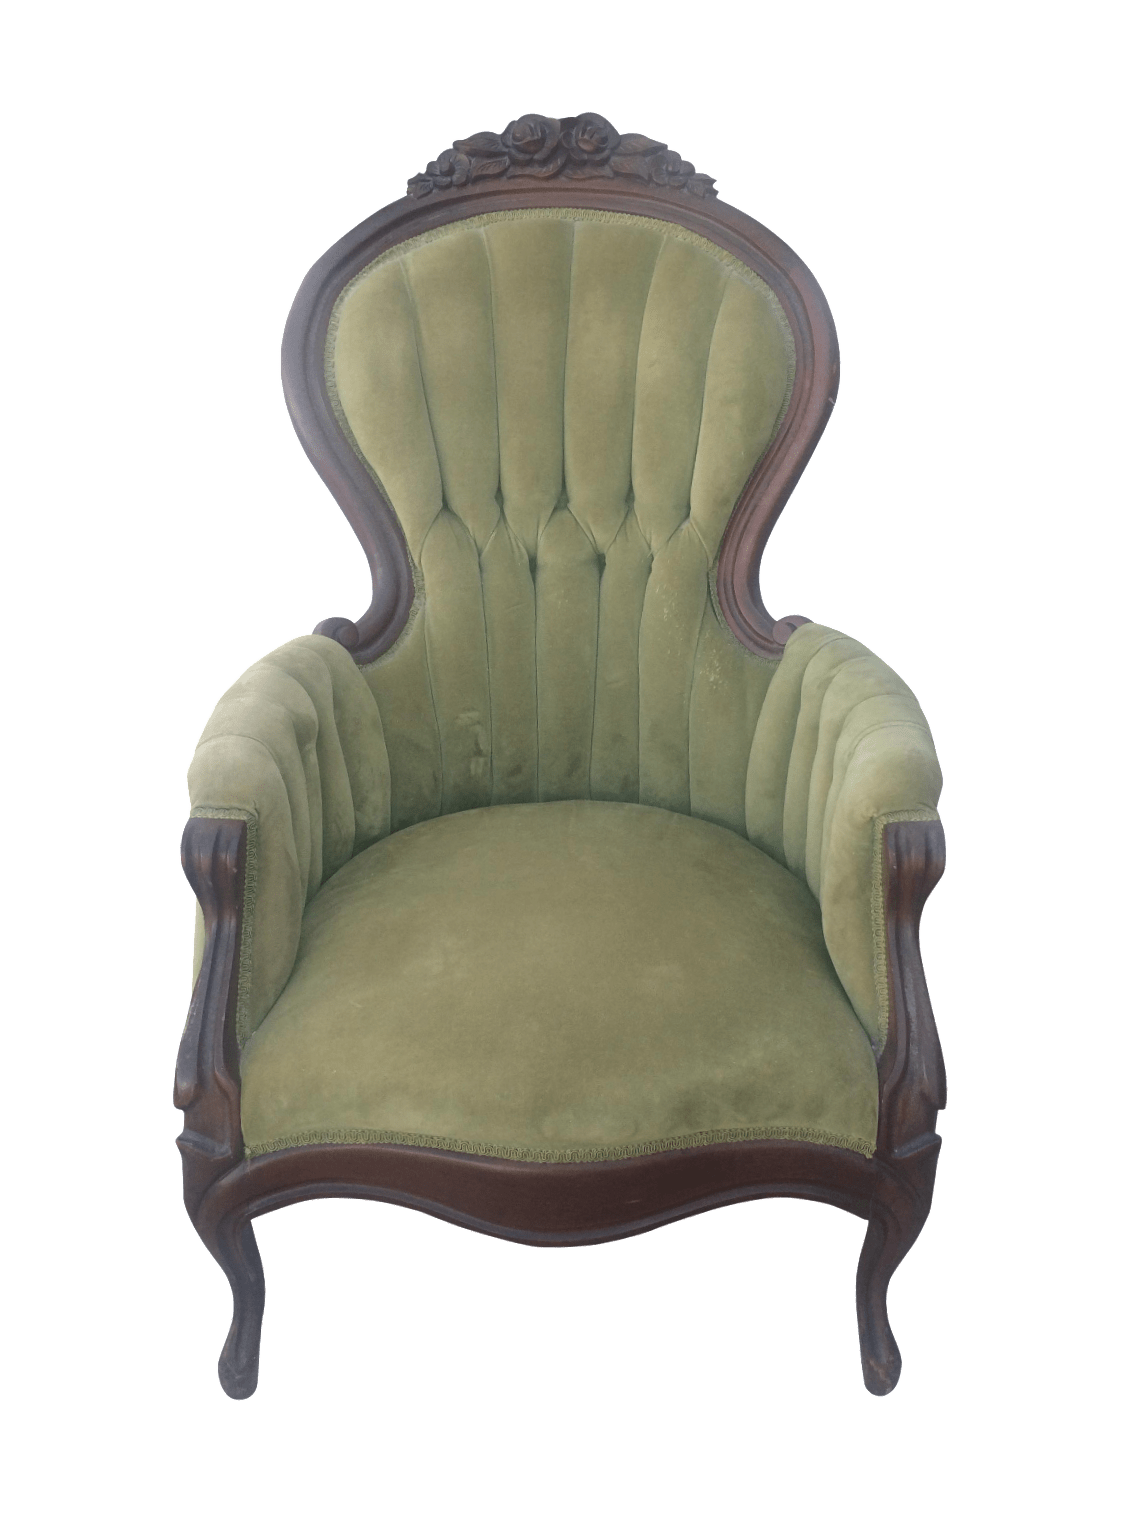 olive green velvet accent chair balloon chairs for sale antique chairish